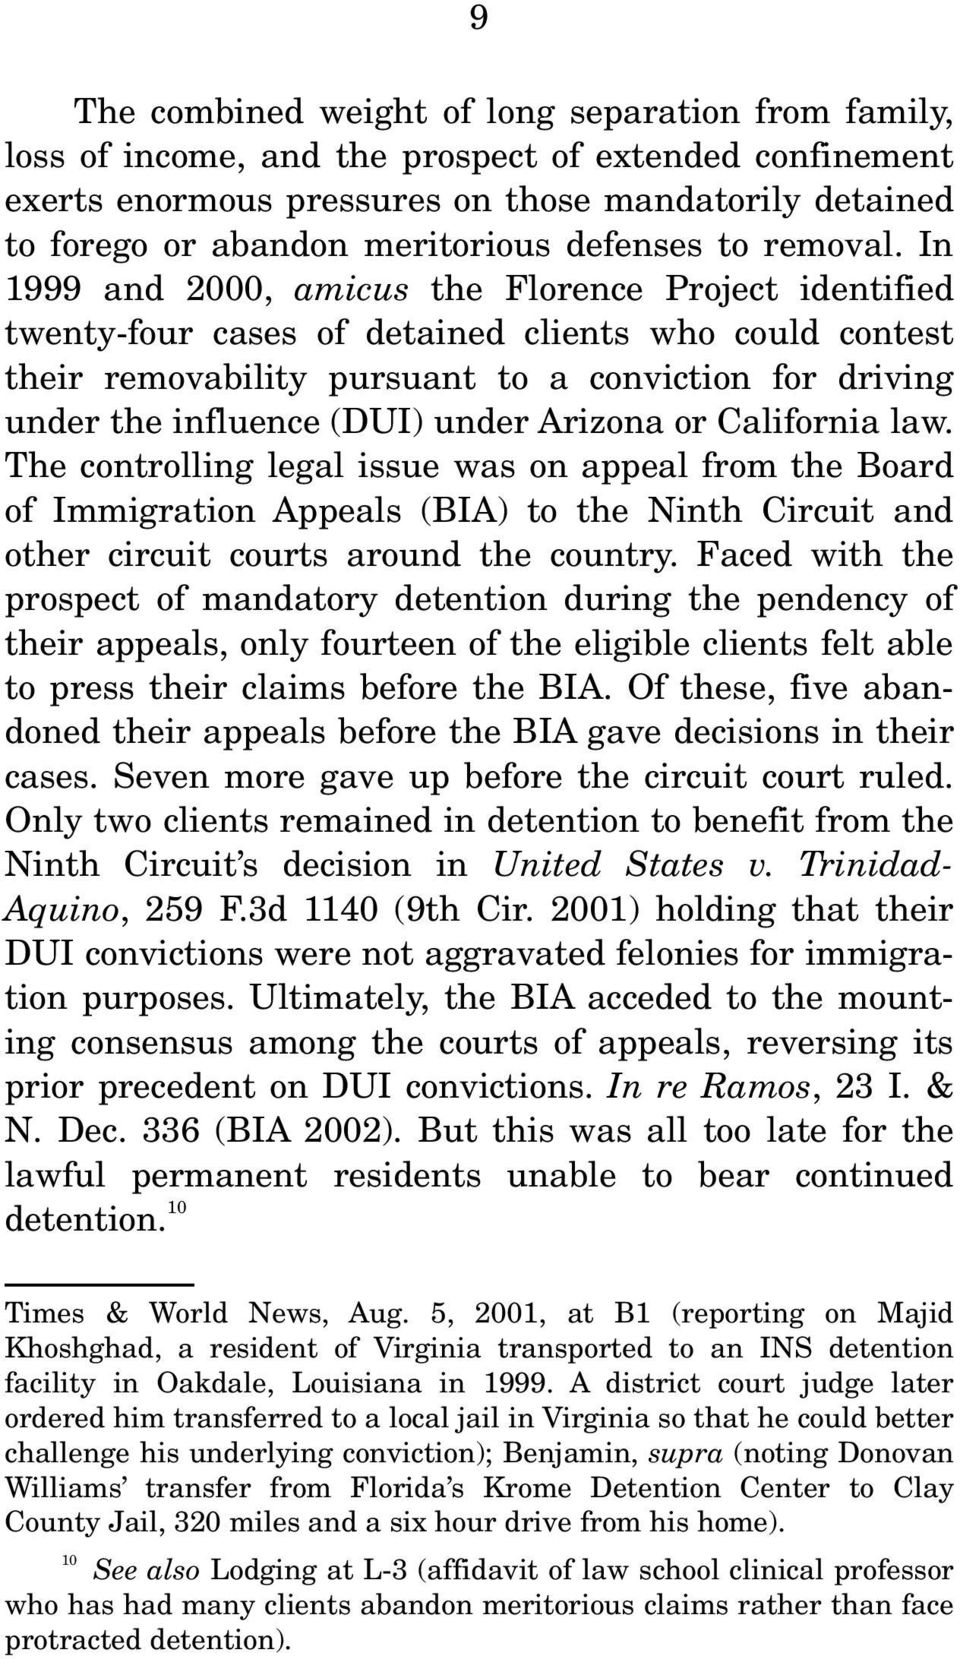 In 1999 and 2000, amicus the Florence Project identified twenty-four cases of detained clients who could contest their removability pursuant to a conviction for driving under the influence (DUI)